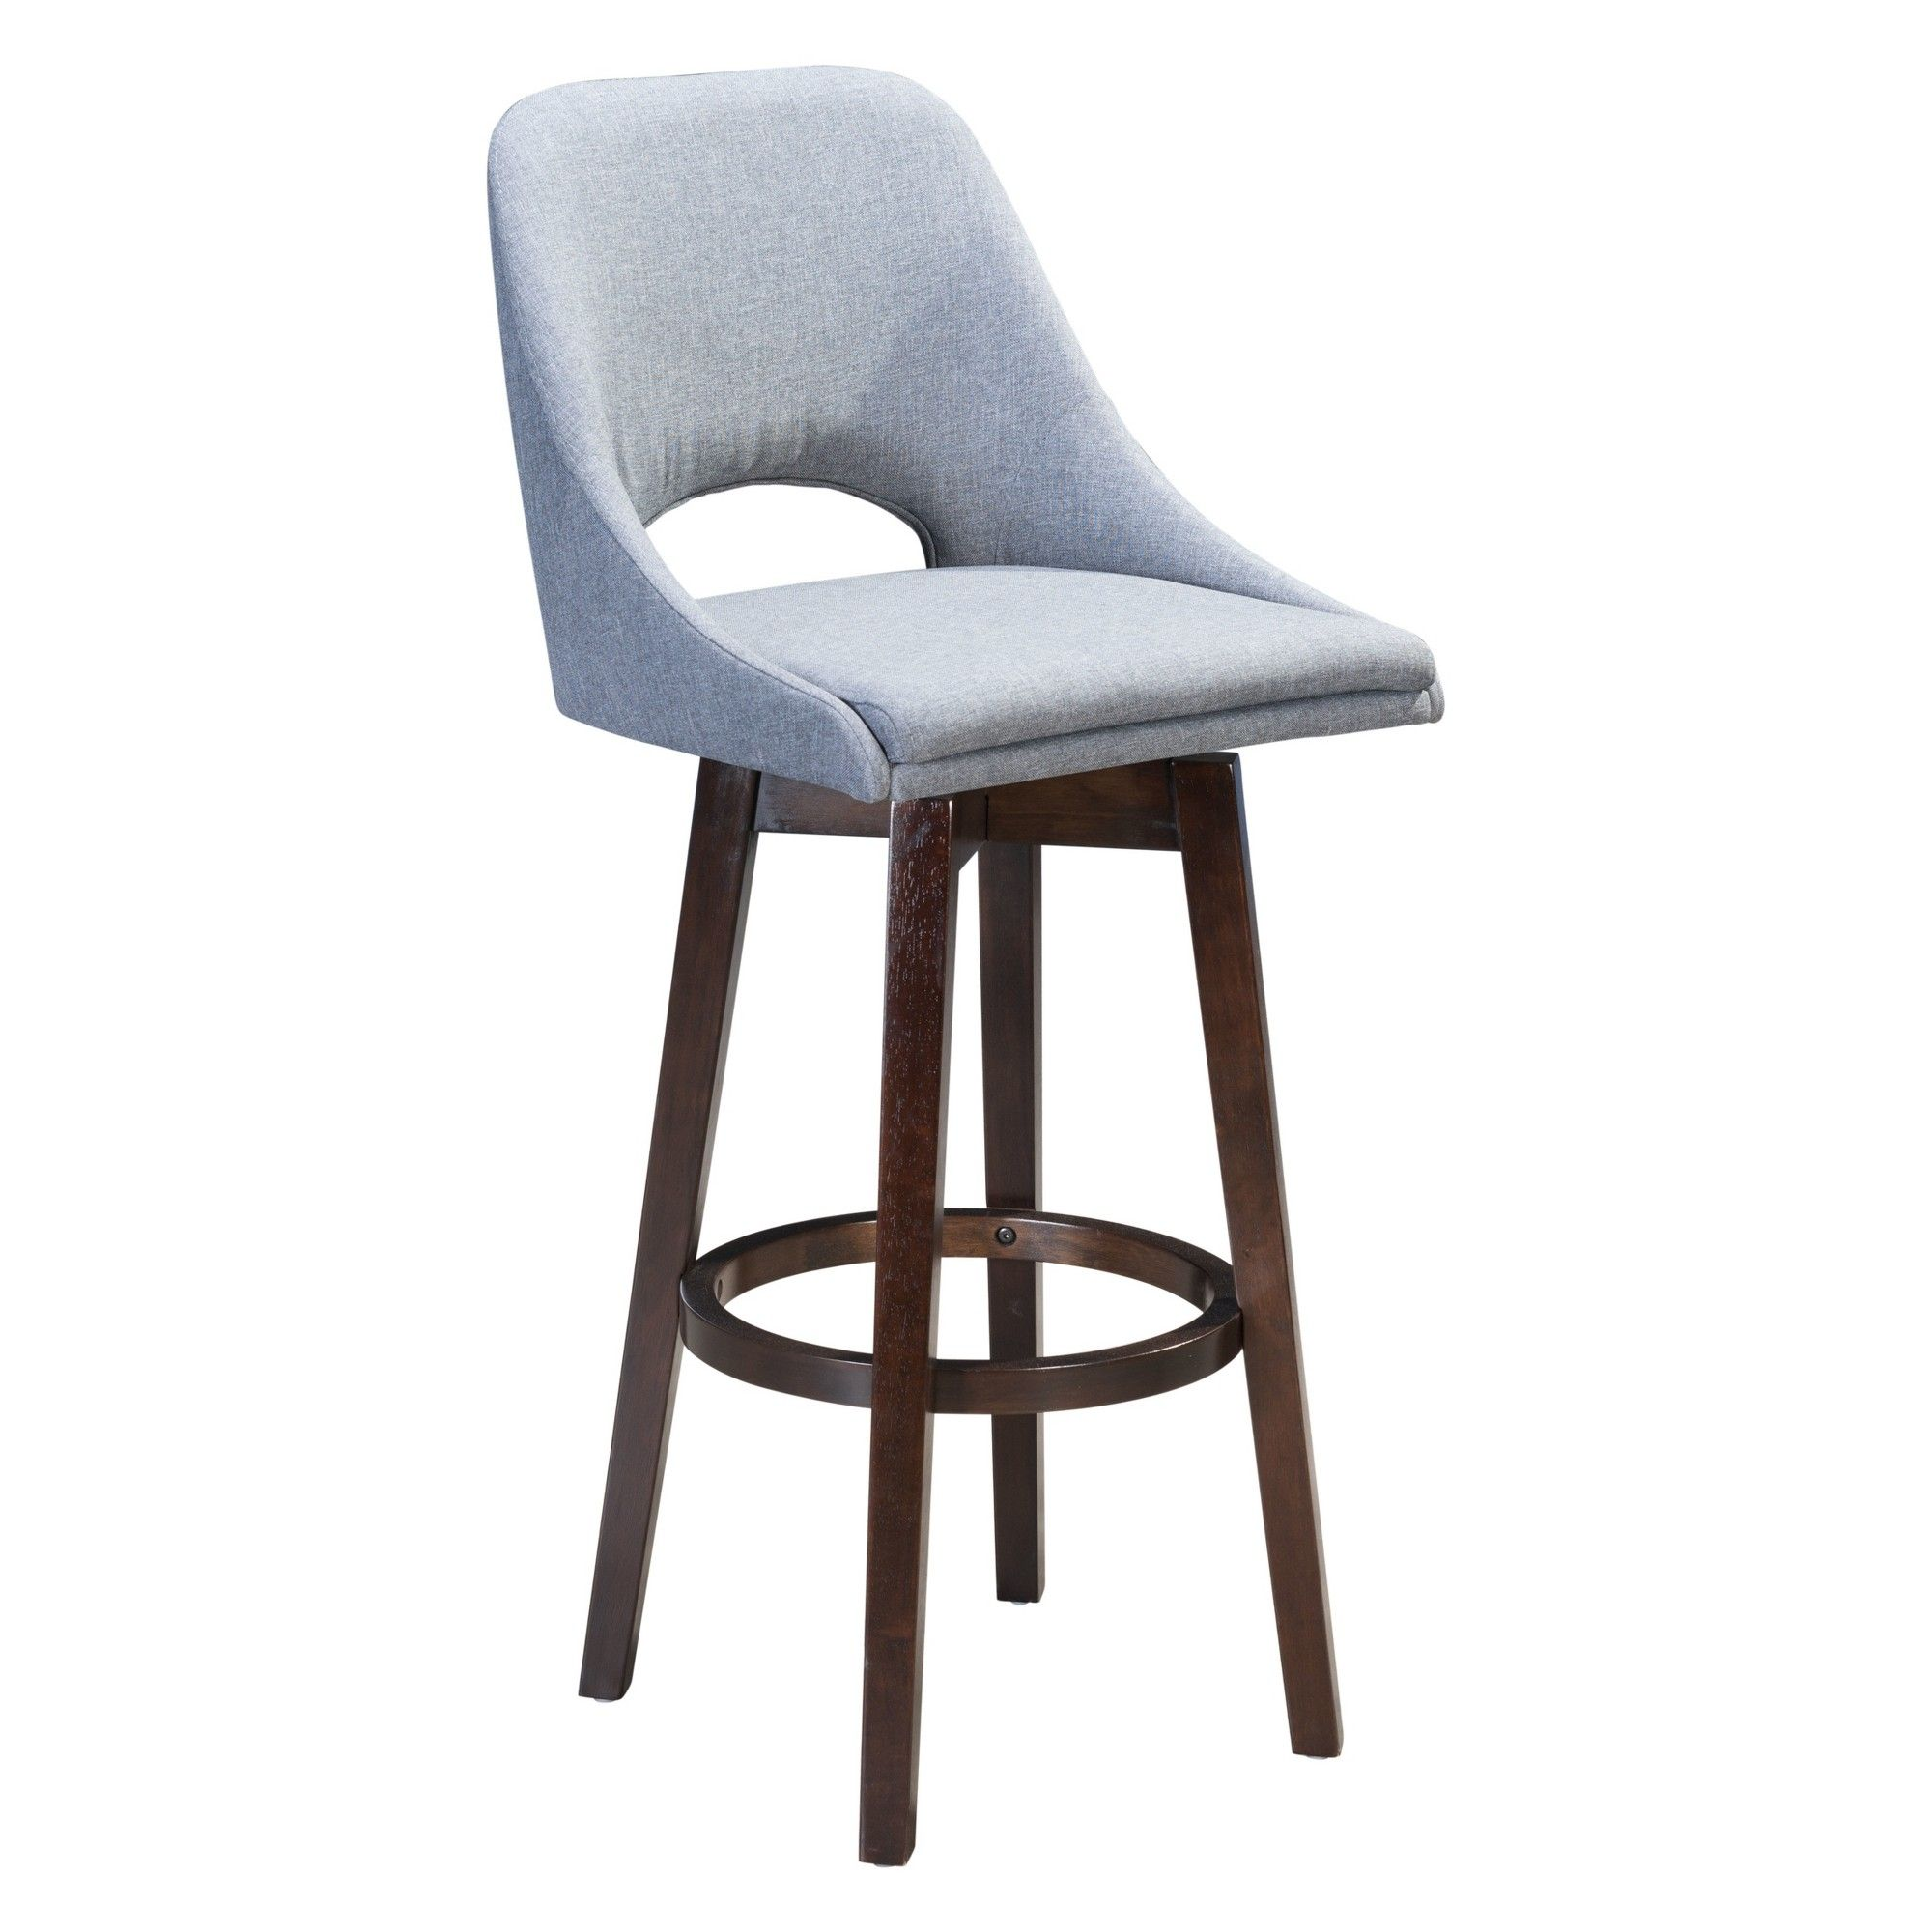 Tremendous 43 Modern Bar Chair Charcoal Gray Zm Home Upholstered Pdpeps Interior Chair Design Pdpepsorg